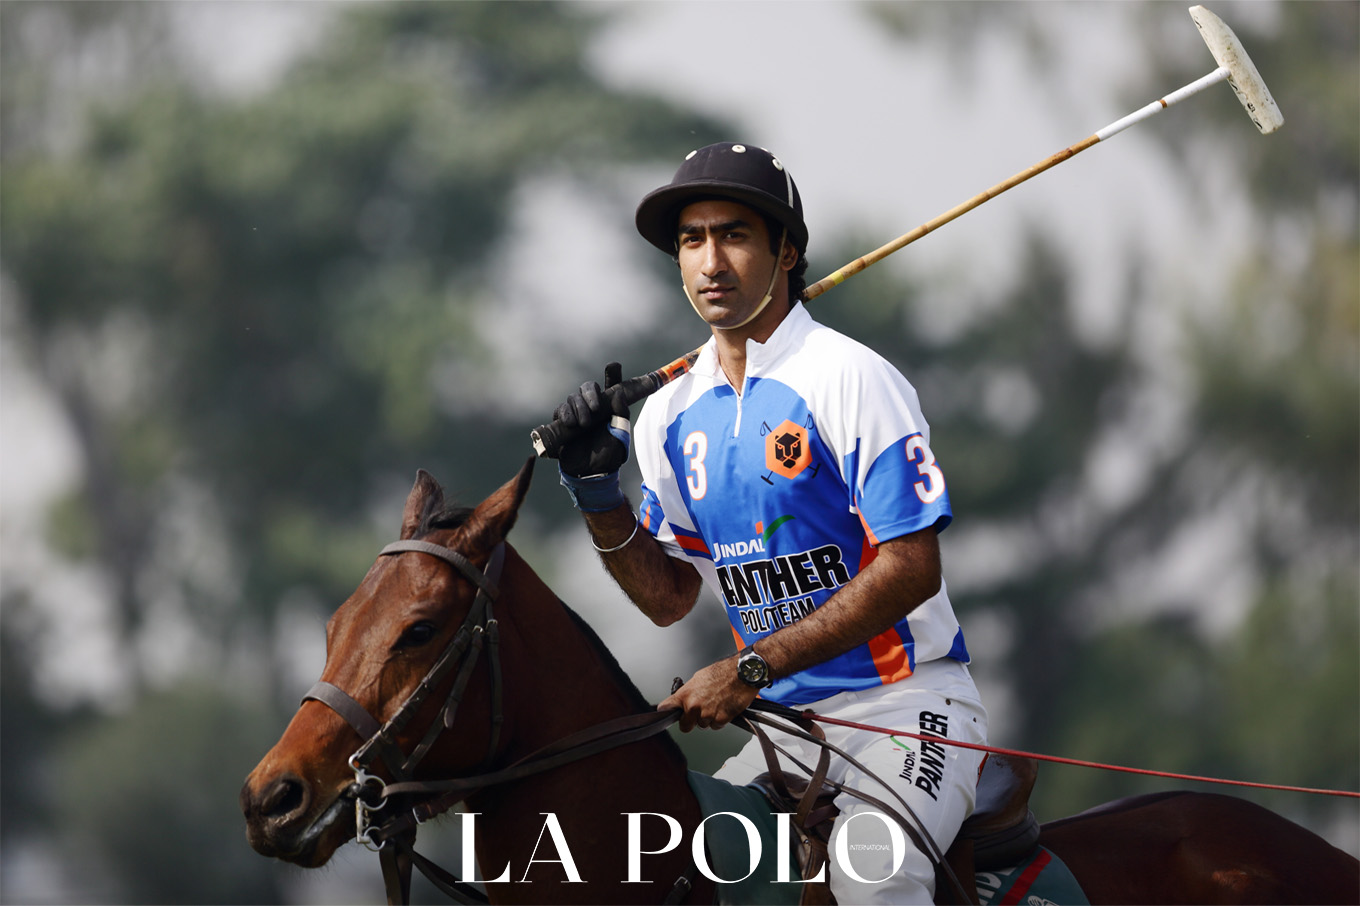 Ministry of Youth Affairs and Sports, Government Of India,About Arjuna Award polo in award , polo award , india polo award , arjuna award 2019 , the Arjuna Awardee in Polo, Arjuna Awardees in Polo